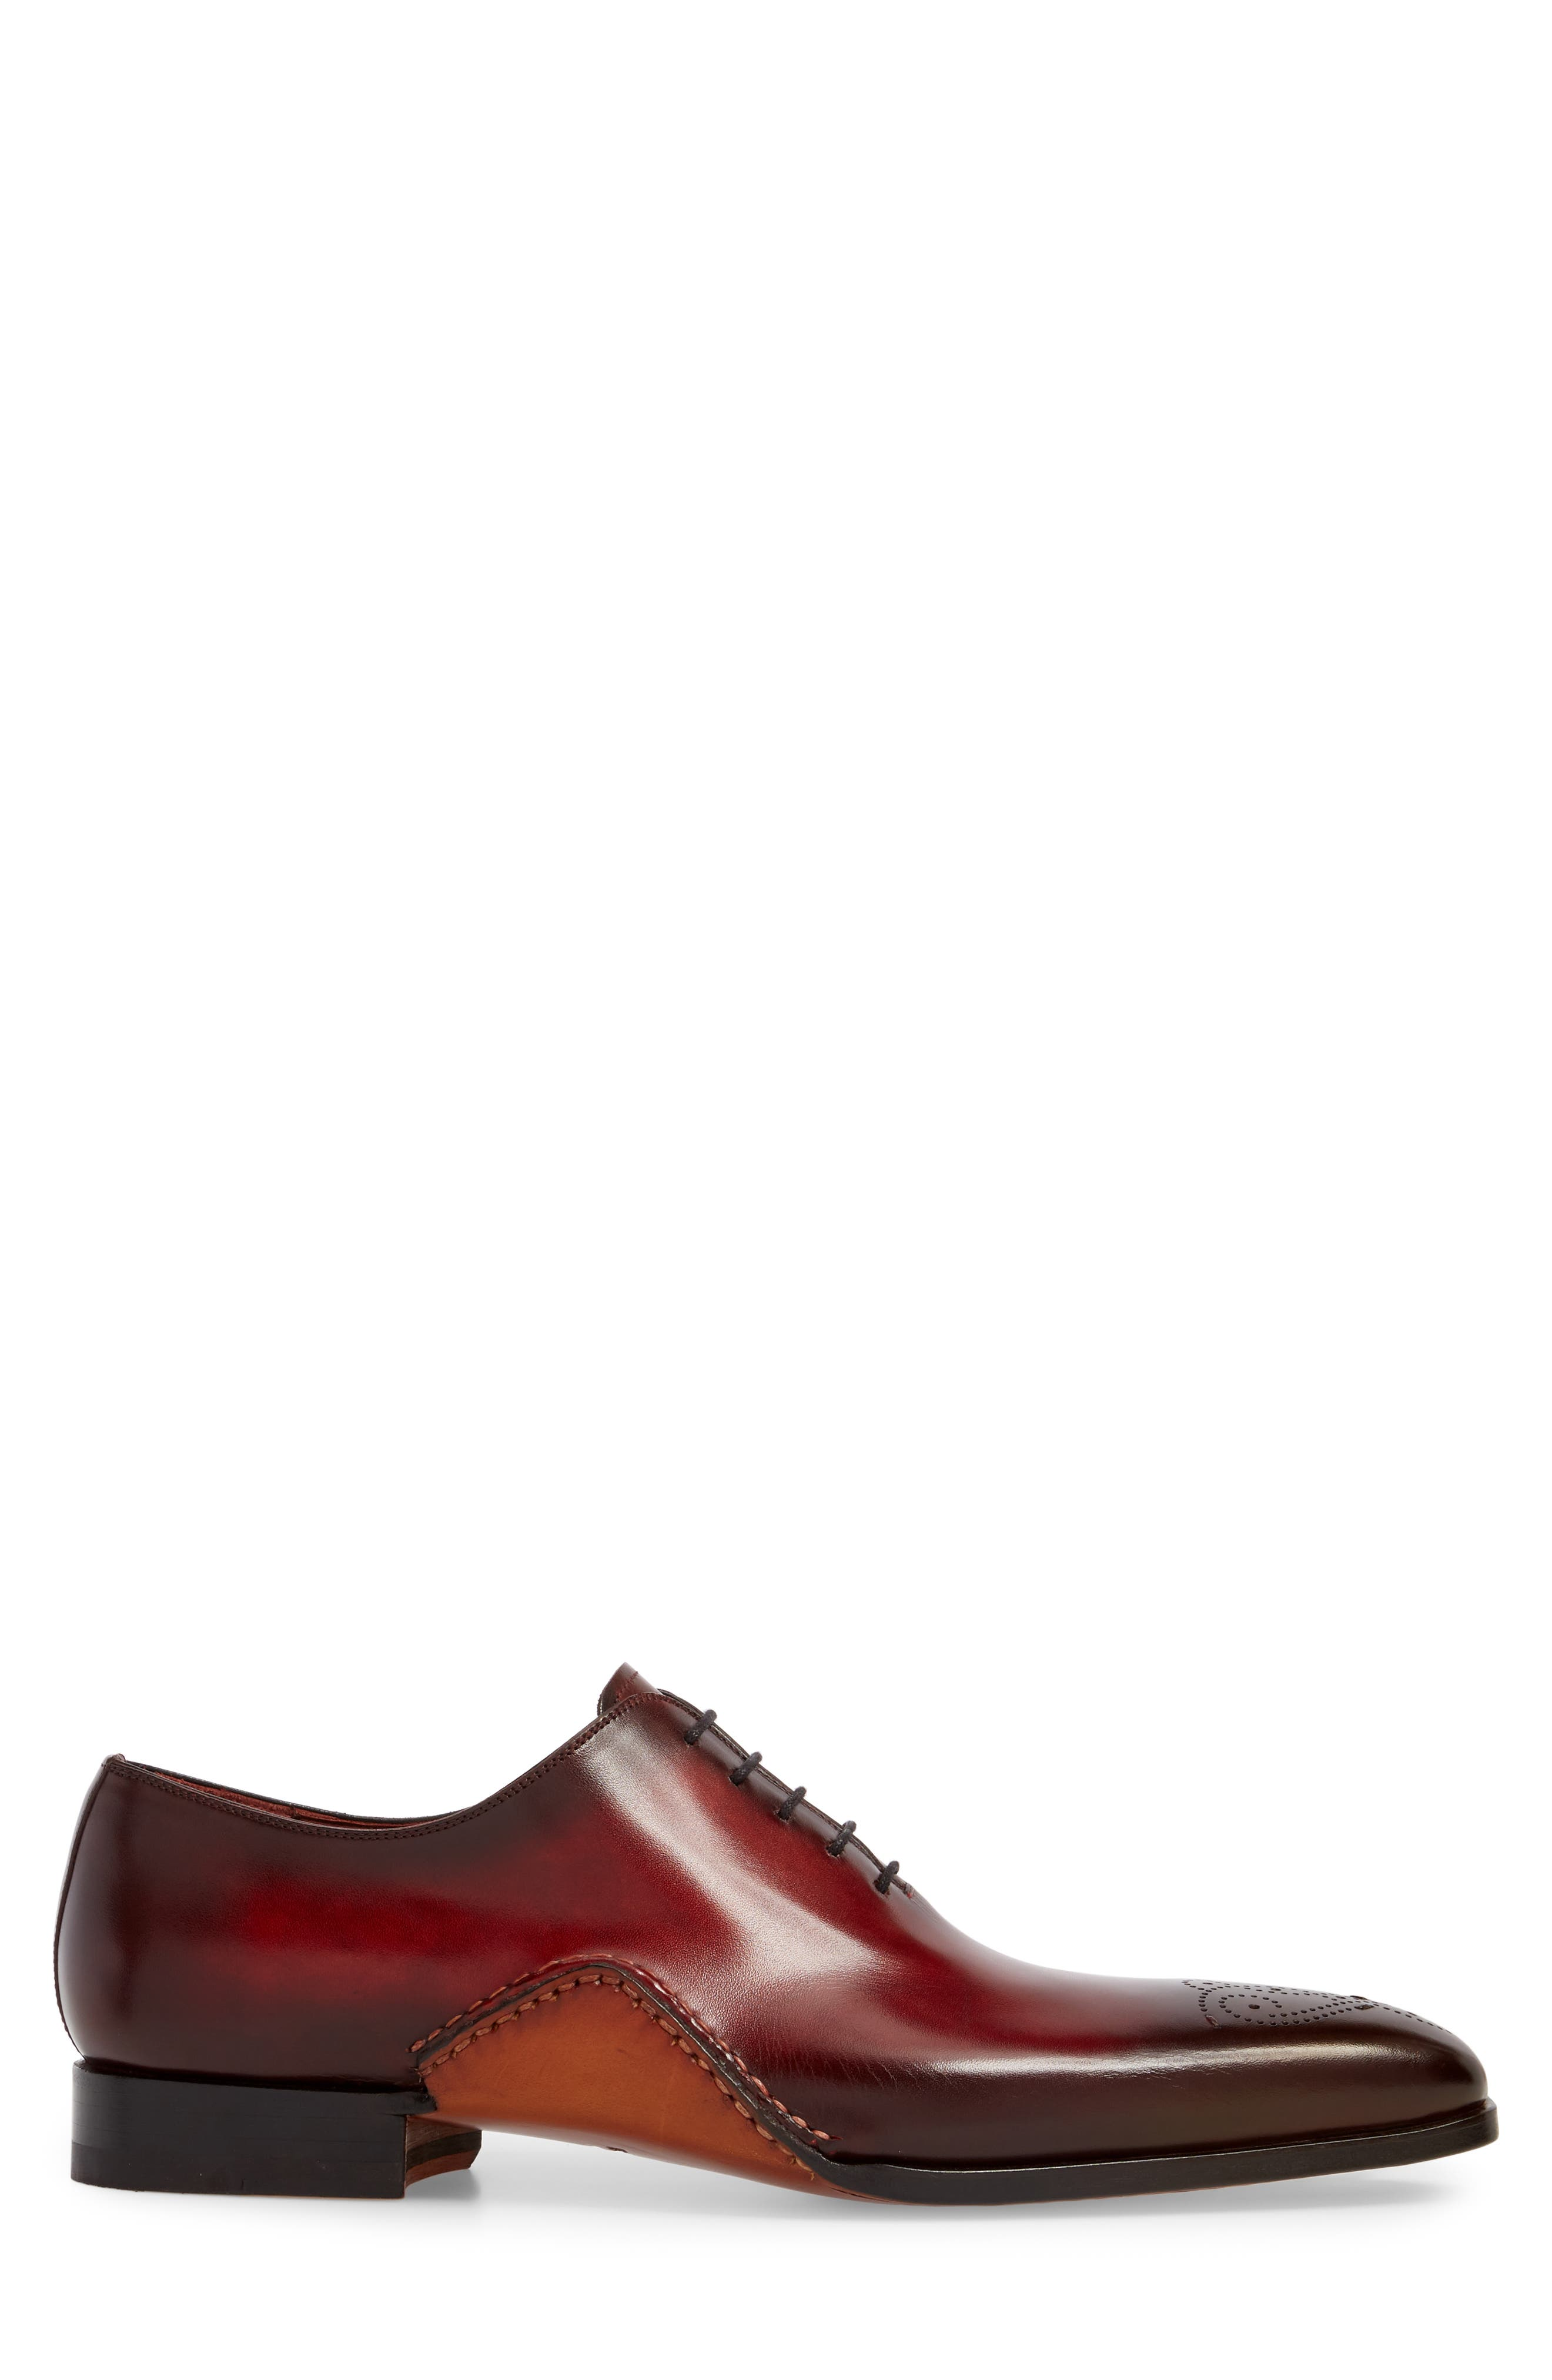 Vada Brogued Whole Cut Shoe,                             Alternate thumbnail 3, color,                             Red Leather